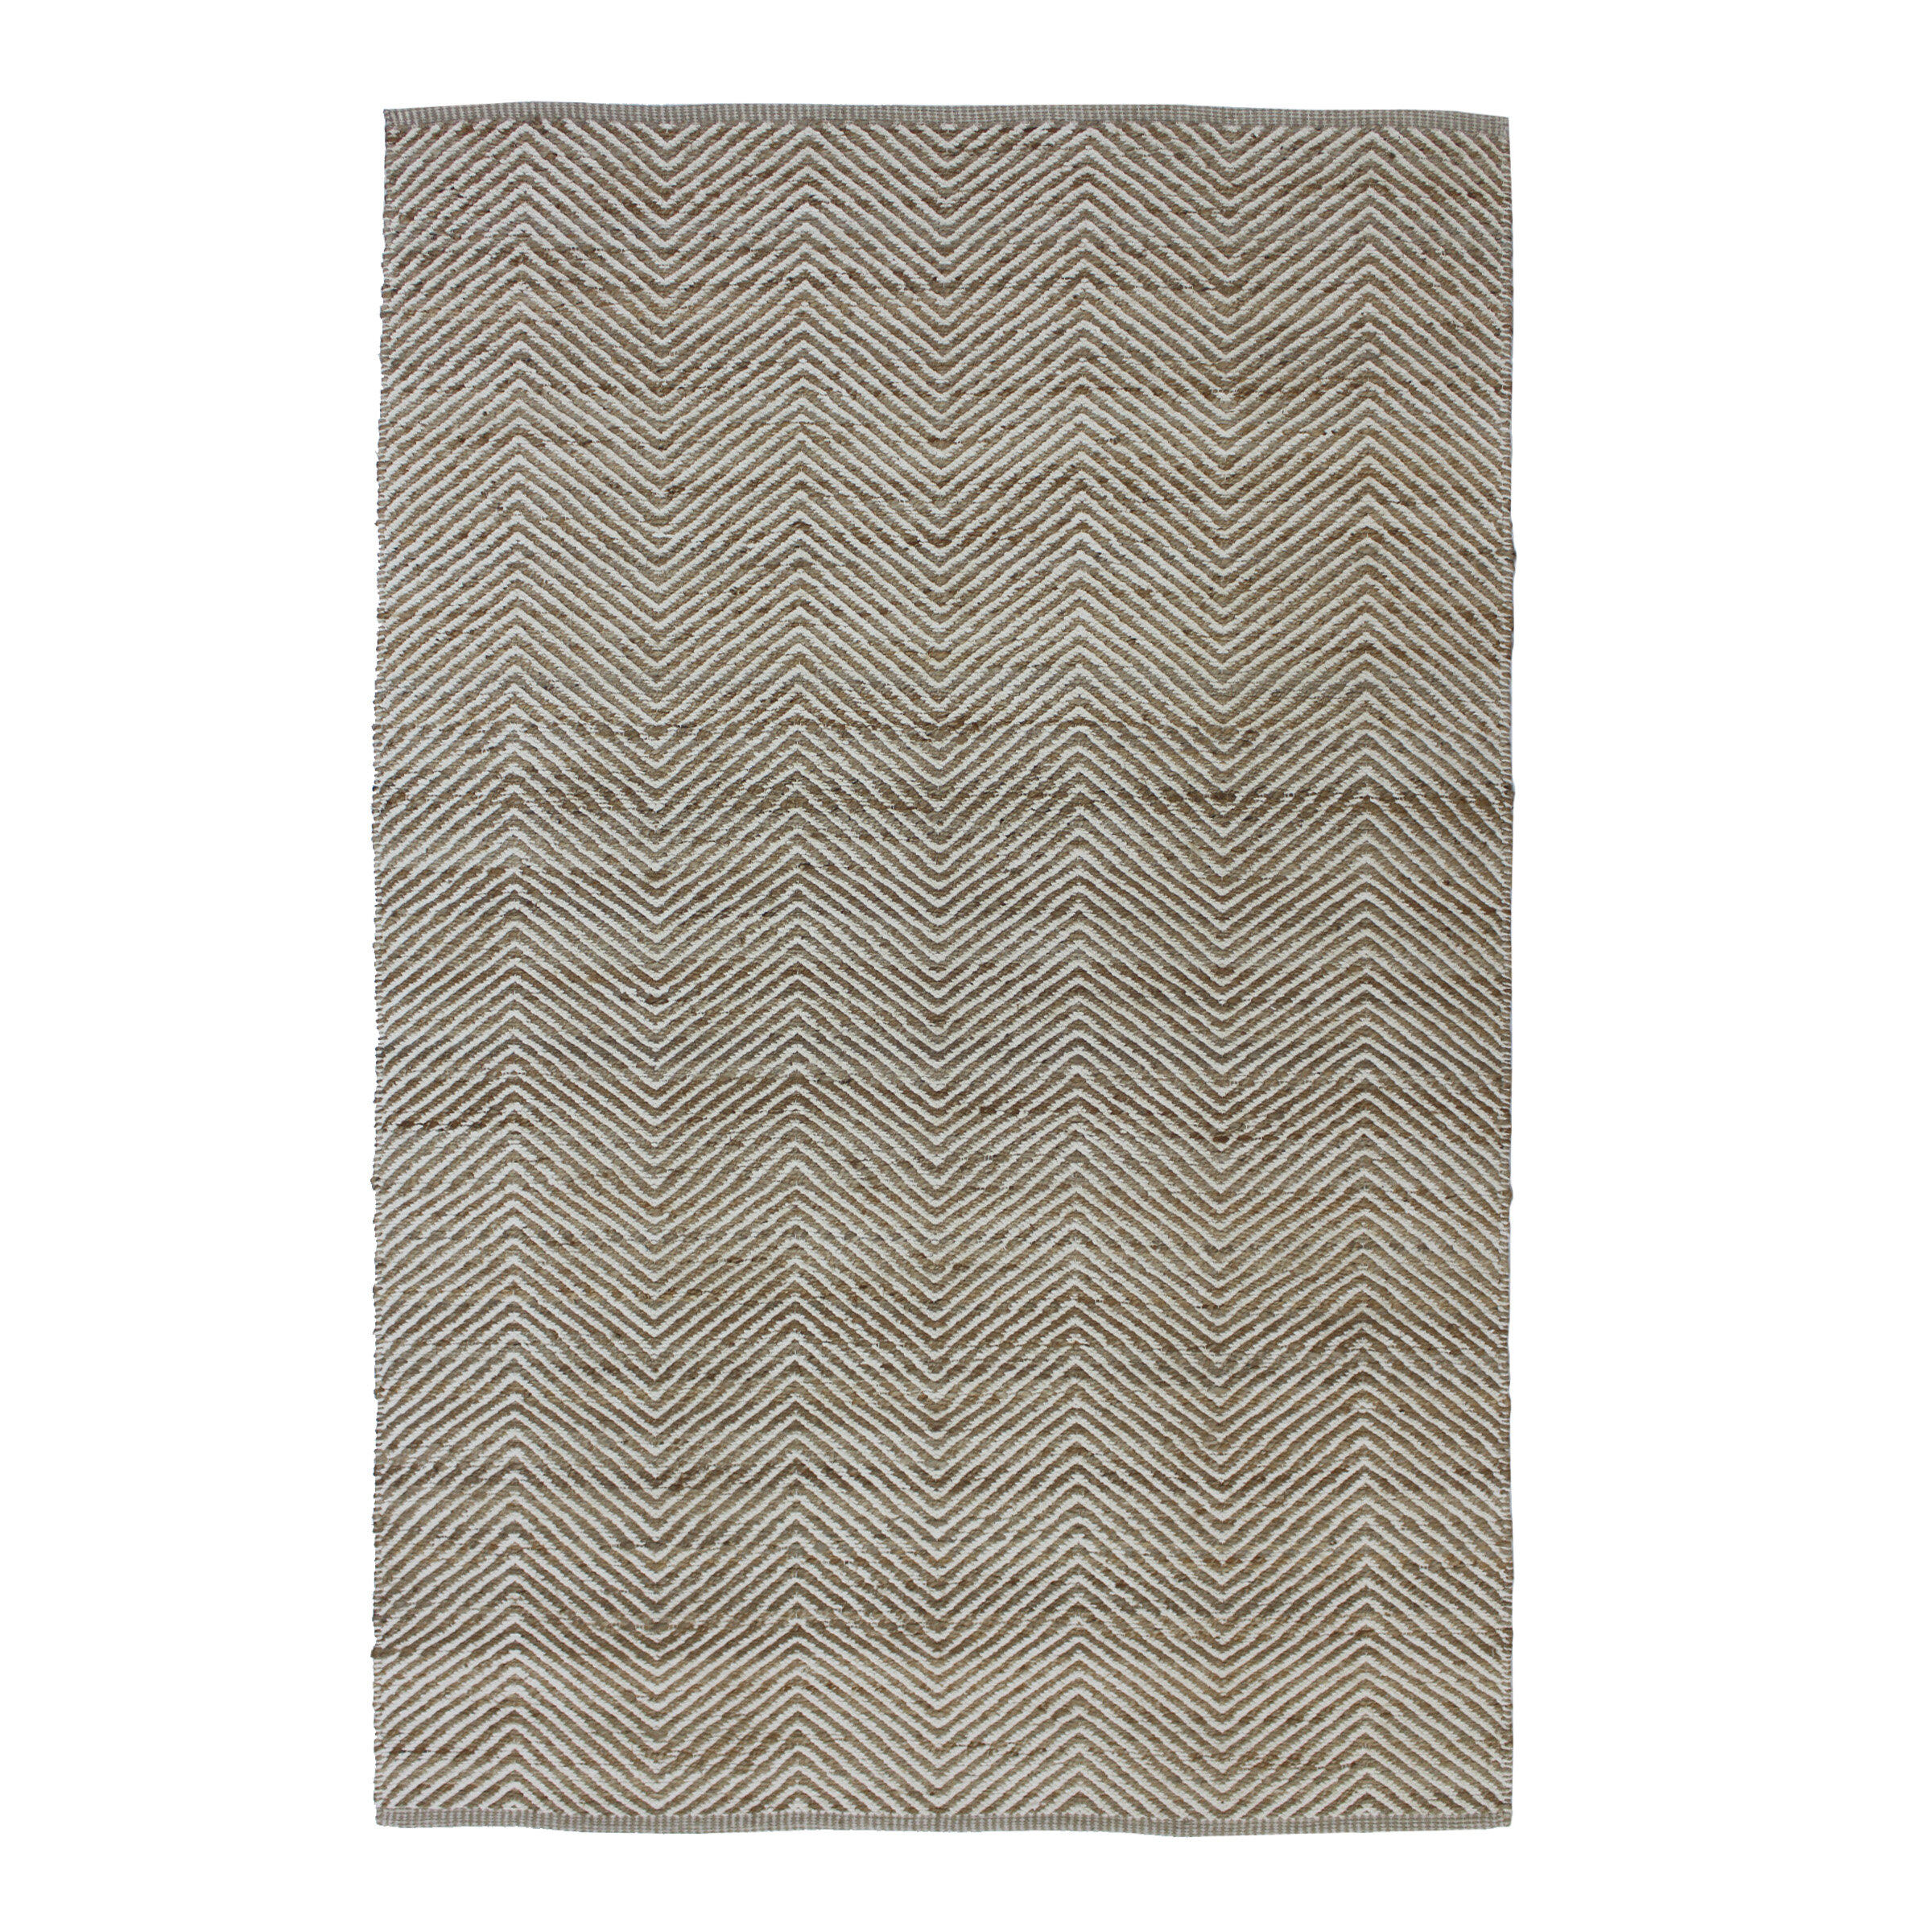 6 X 9 Chenille Area Rugs You Ll Love In 2021 Wayfair